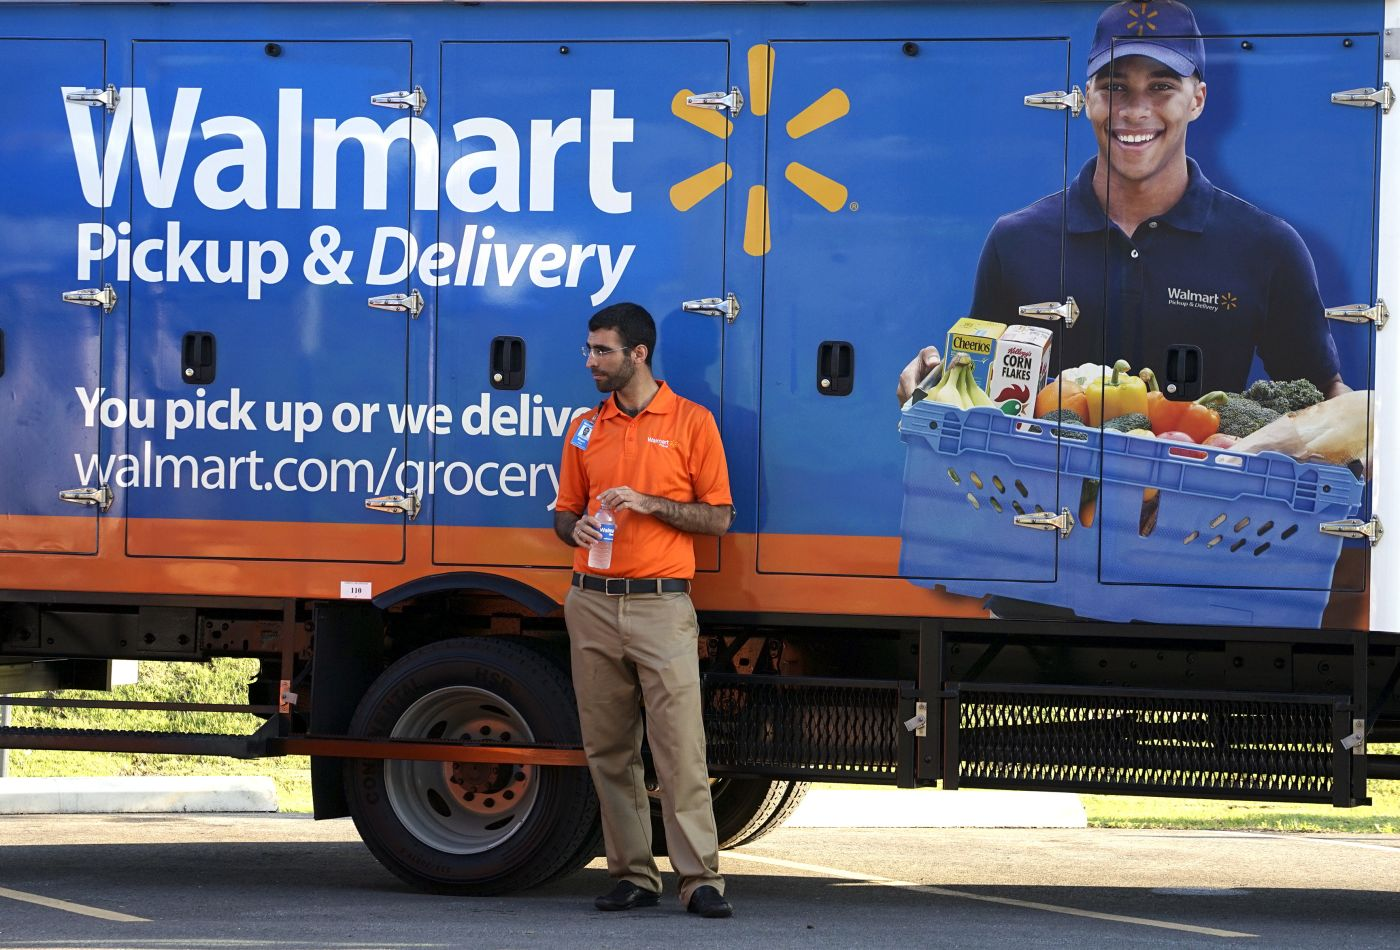 Walmart introduces Unlimited Grocery Delivery at just $98 per year